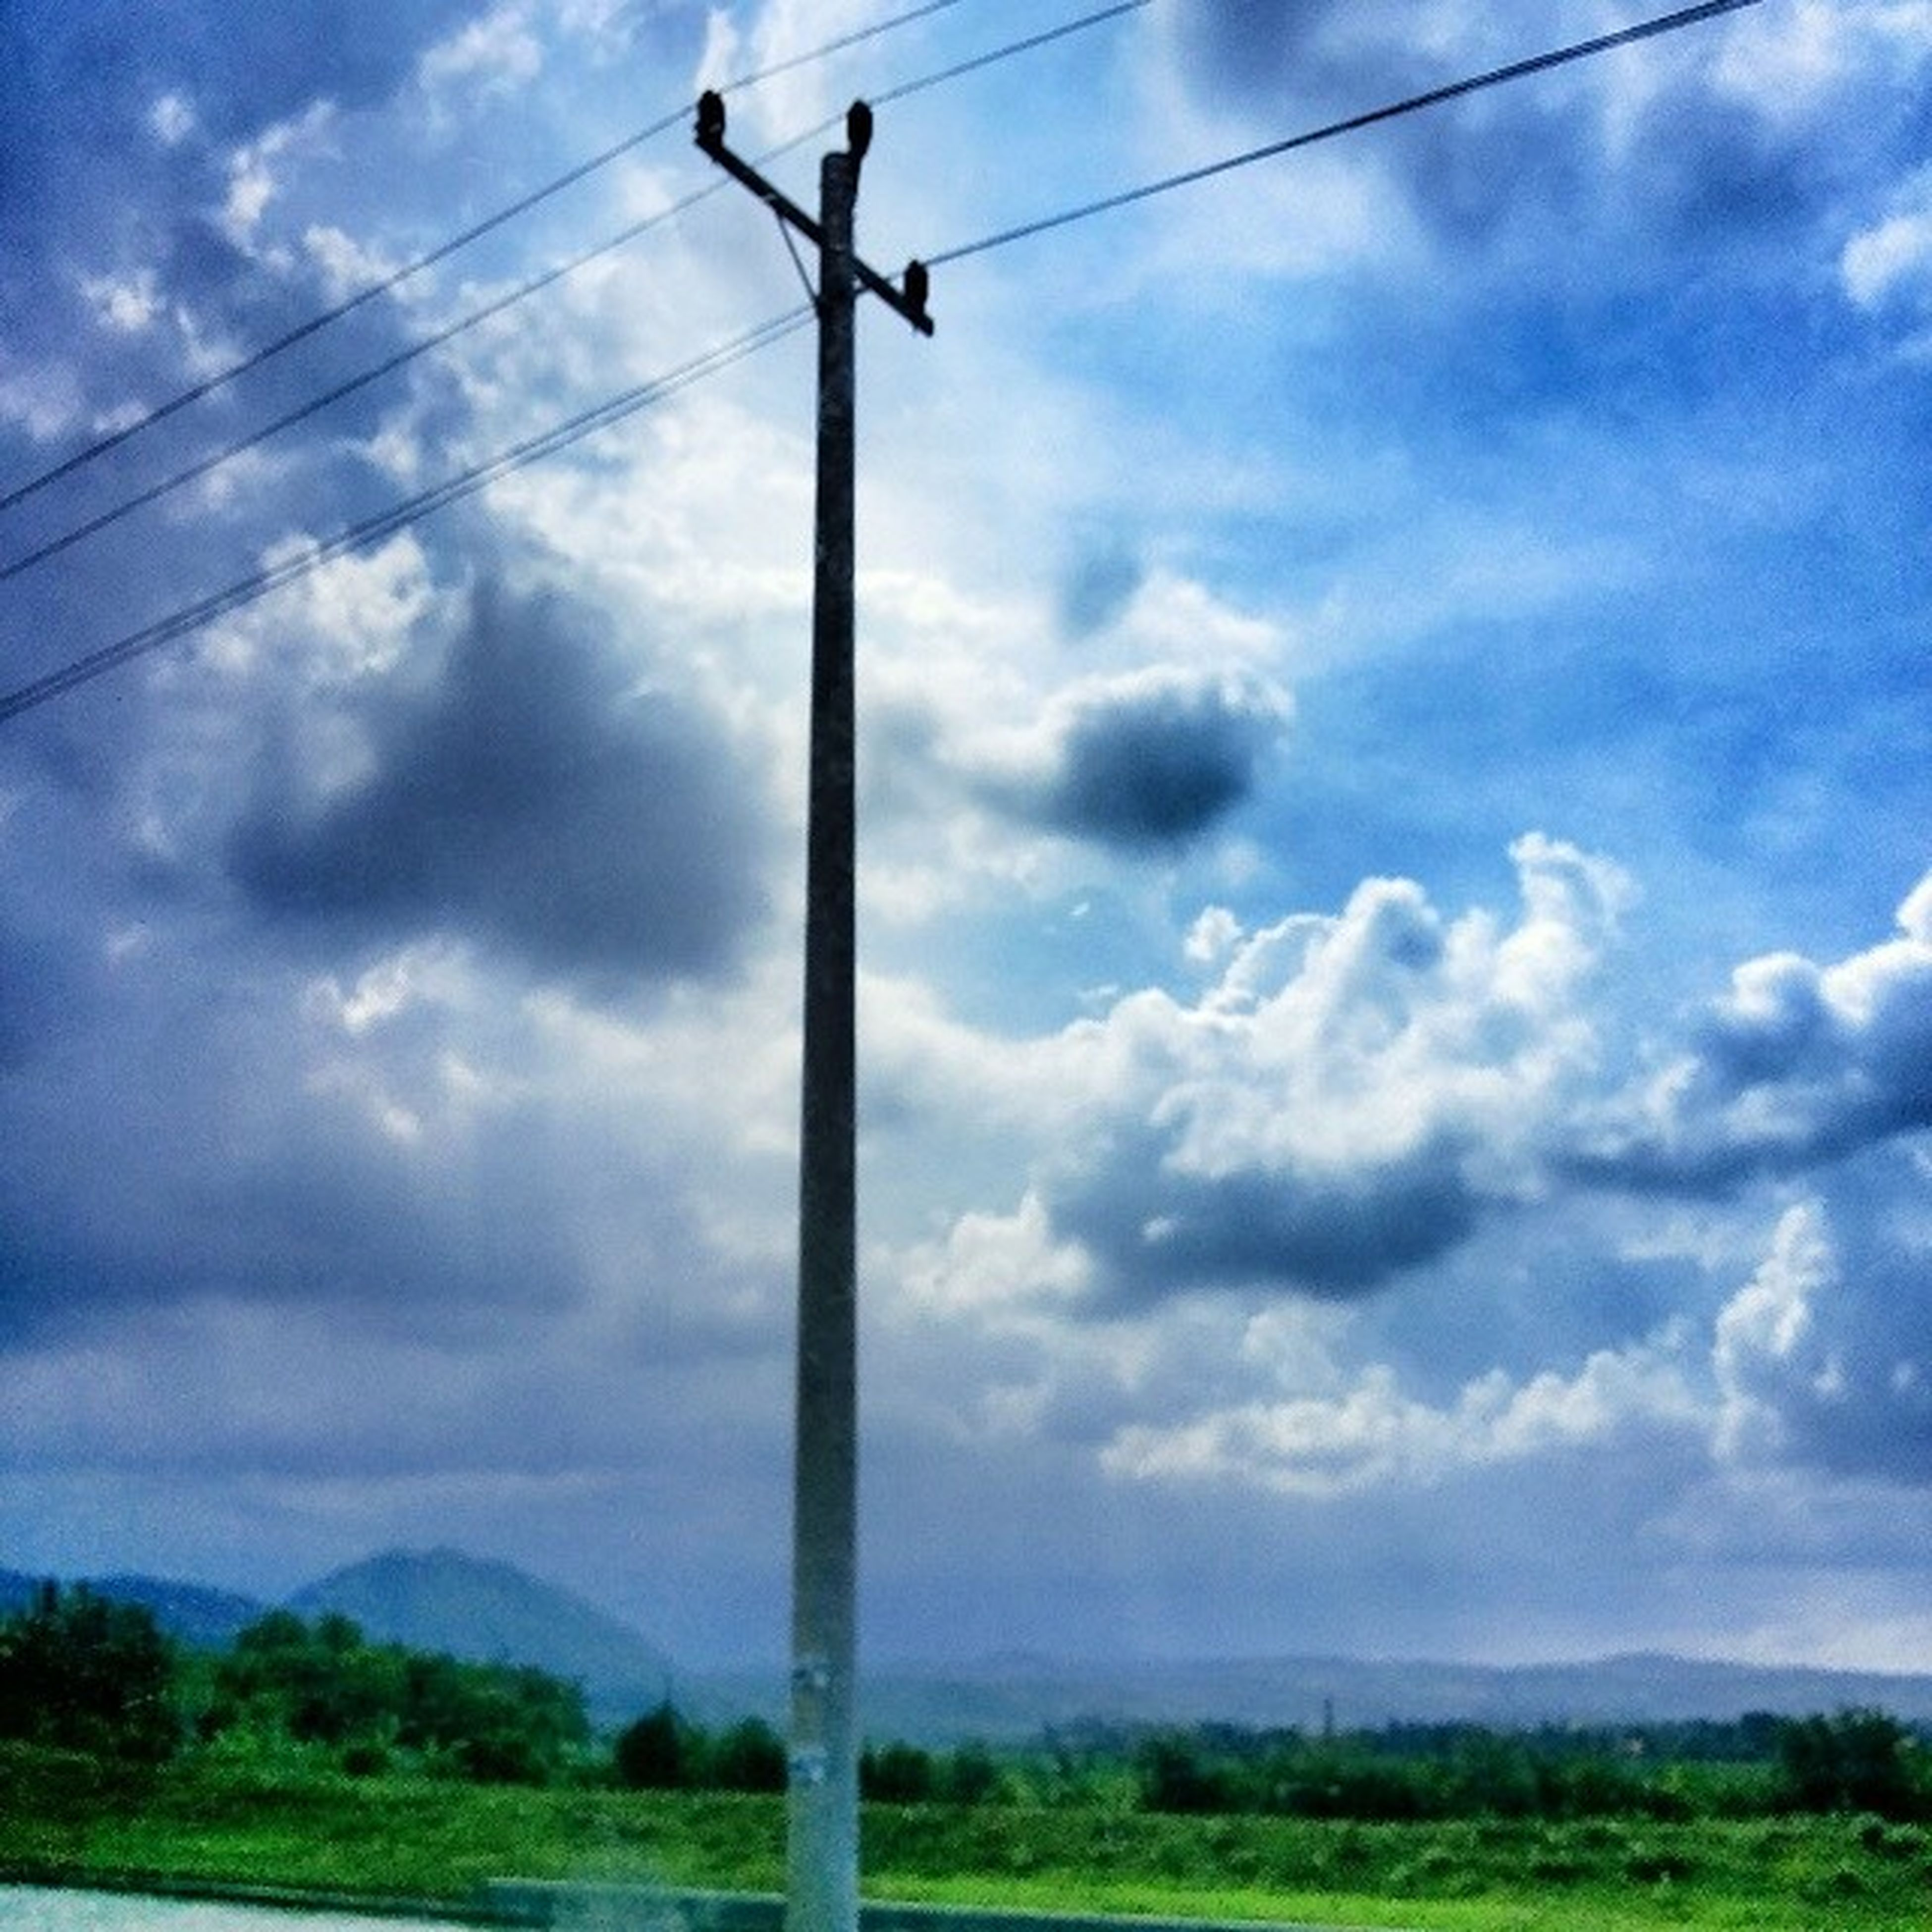 sky, power line, electricity pylon, electricity, cloud - sky, power supply, cable, fuel and power generation, cloudy, cloud, connection, landscape, tranquility, field, tranquil scene, technology, pole, nature, low angle view, scenics